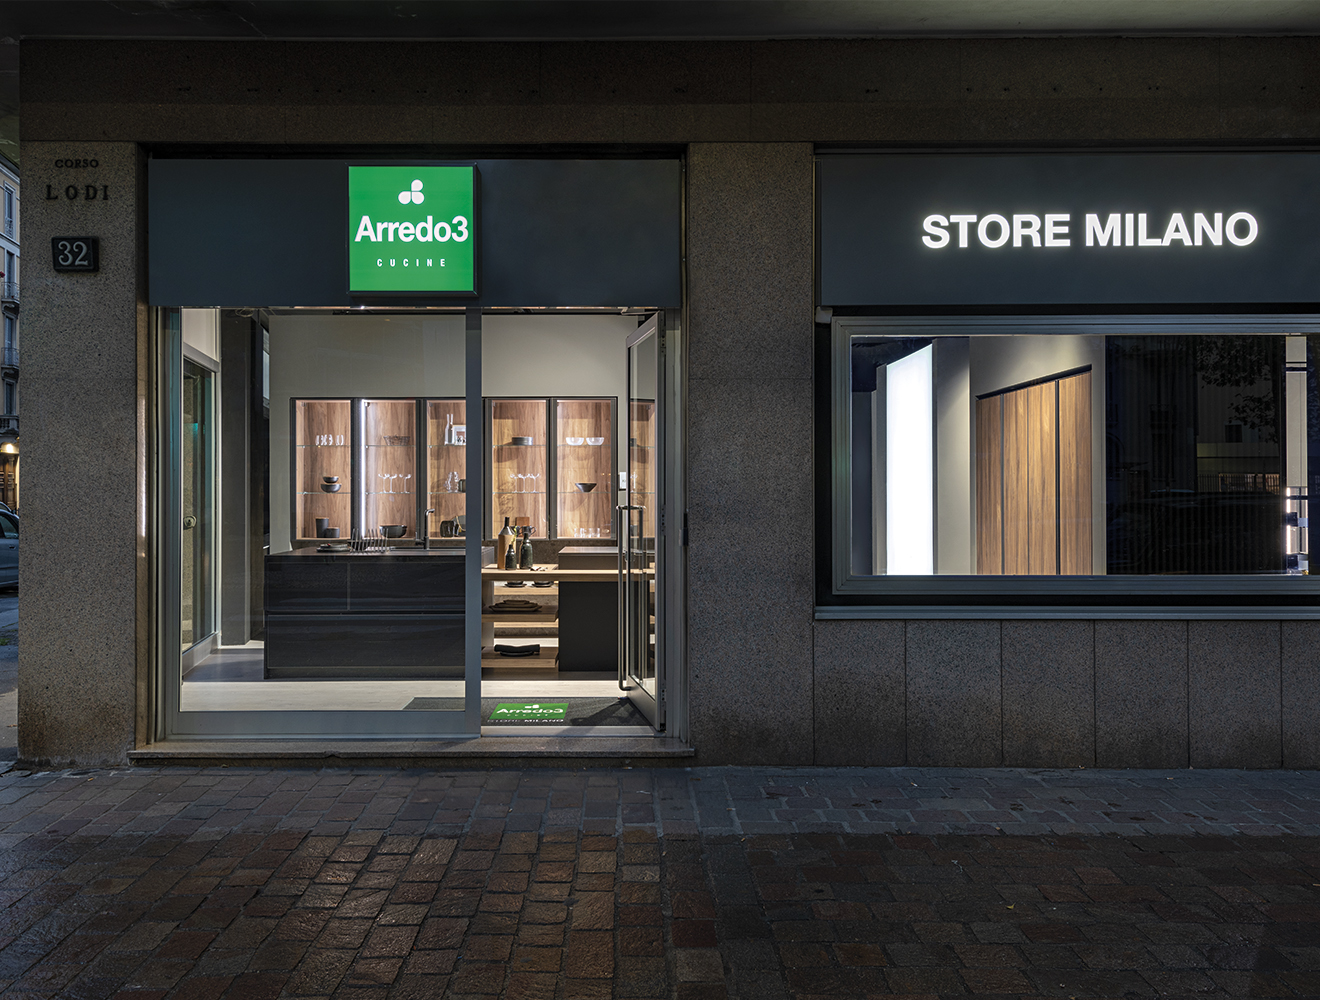 The second Arredo3 store opens in Milan!